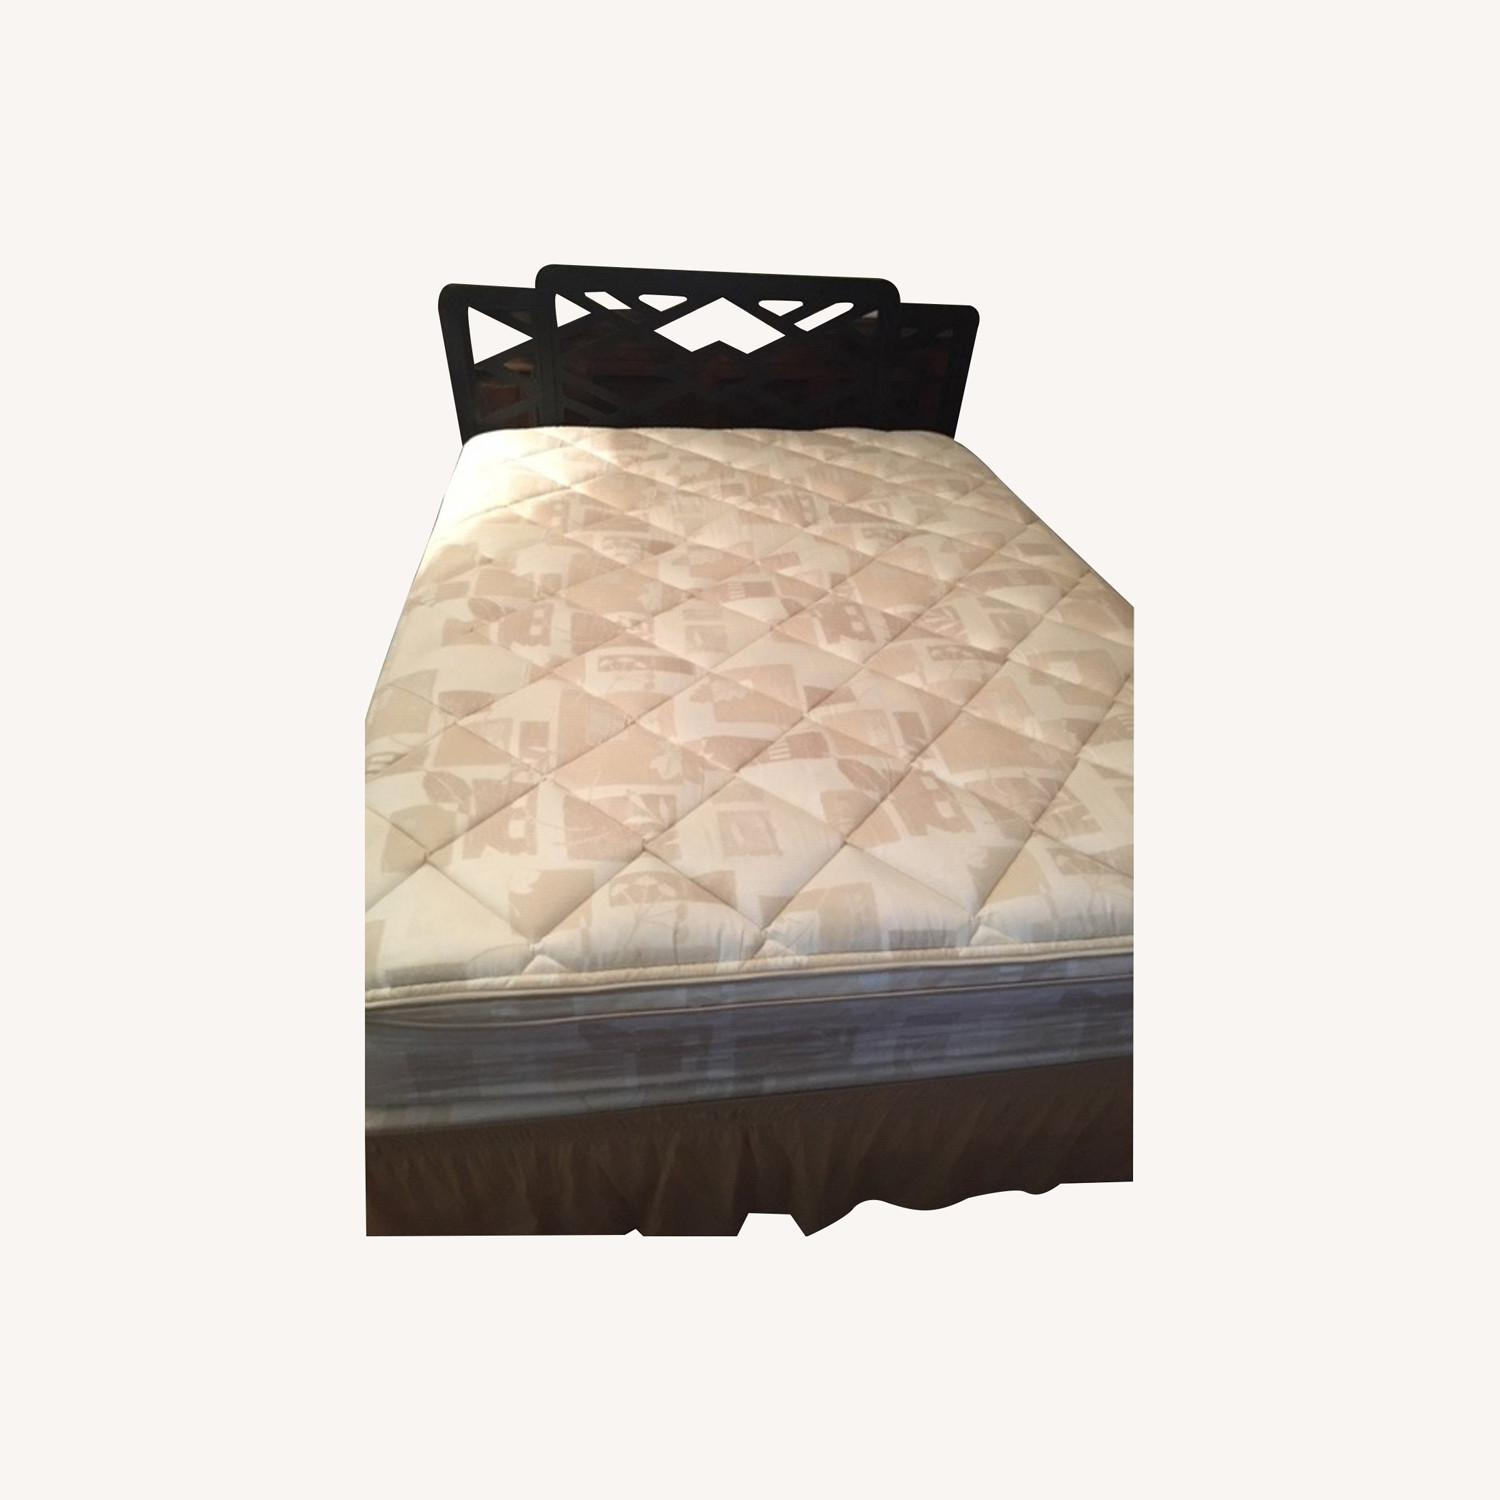 Queen Bed with Black Wood Headboard - image-0